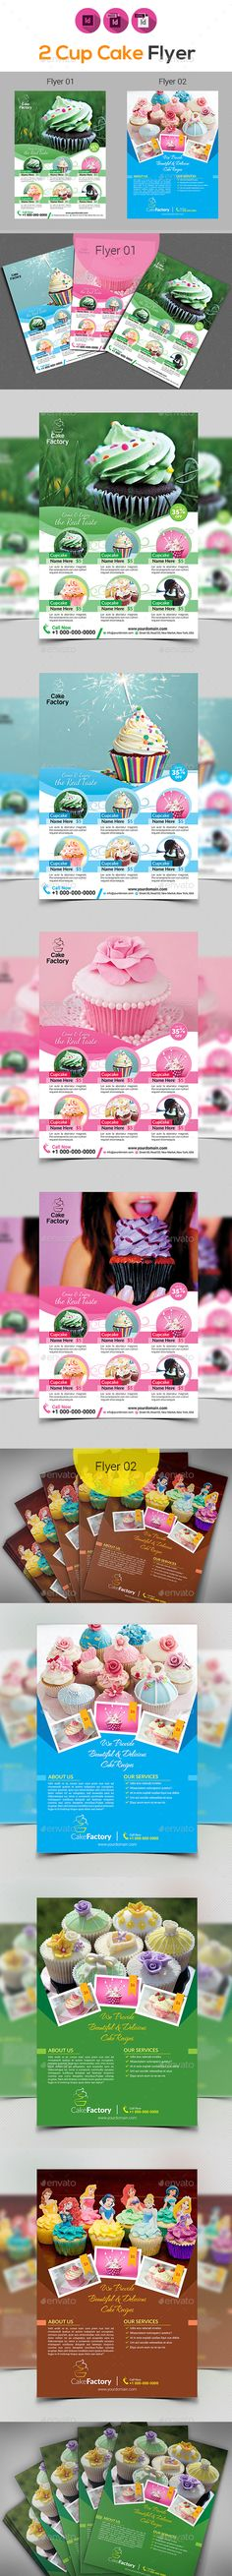 Cake Shop Flyer Bundle — InDesign INDD #drink #coffee • Download ➝ https://graphicriver.net/item/cake-shop-flyer-bundle/18837870?ref=pxcr